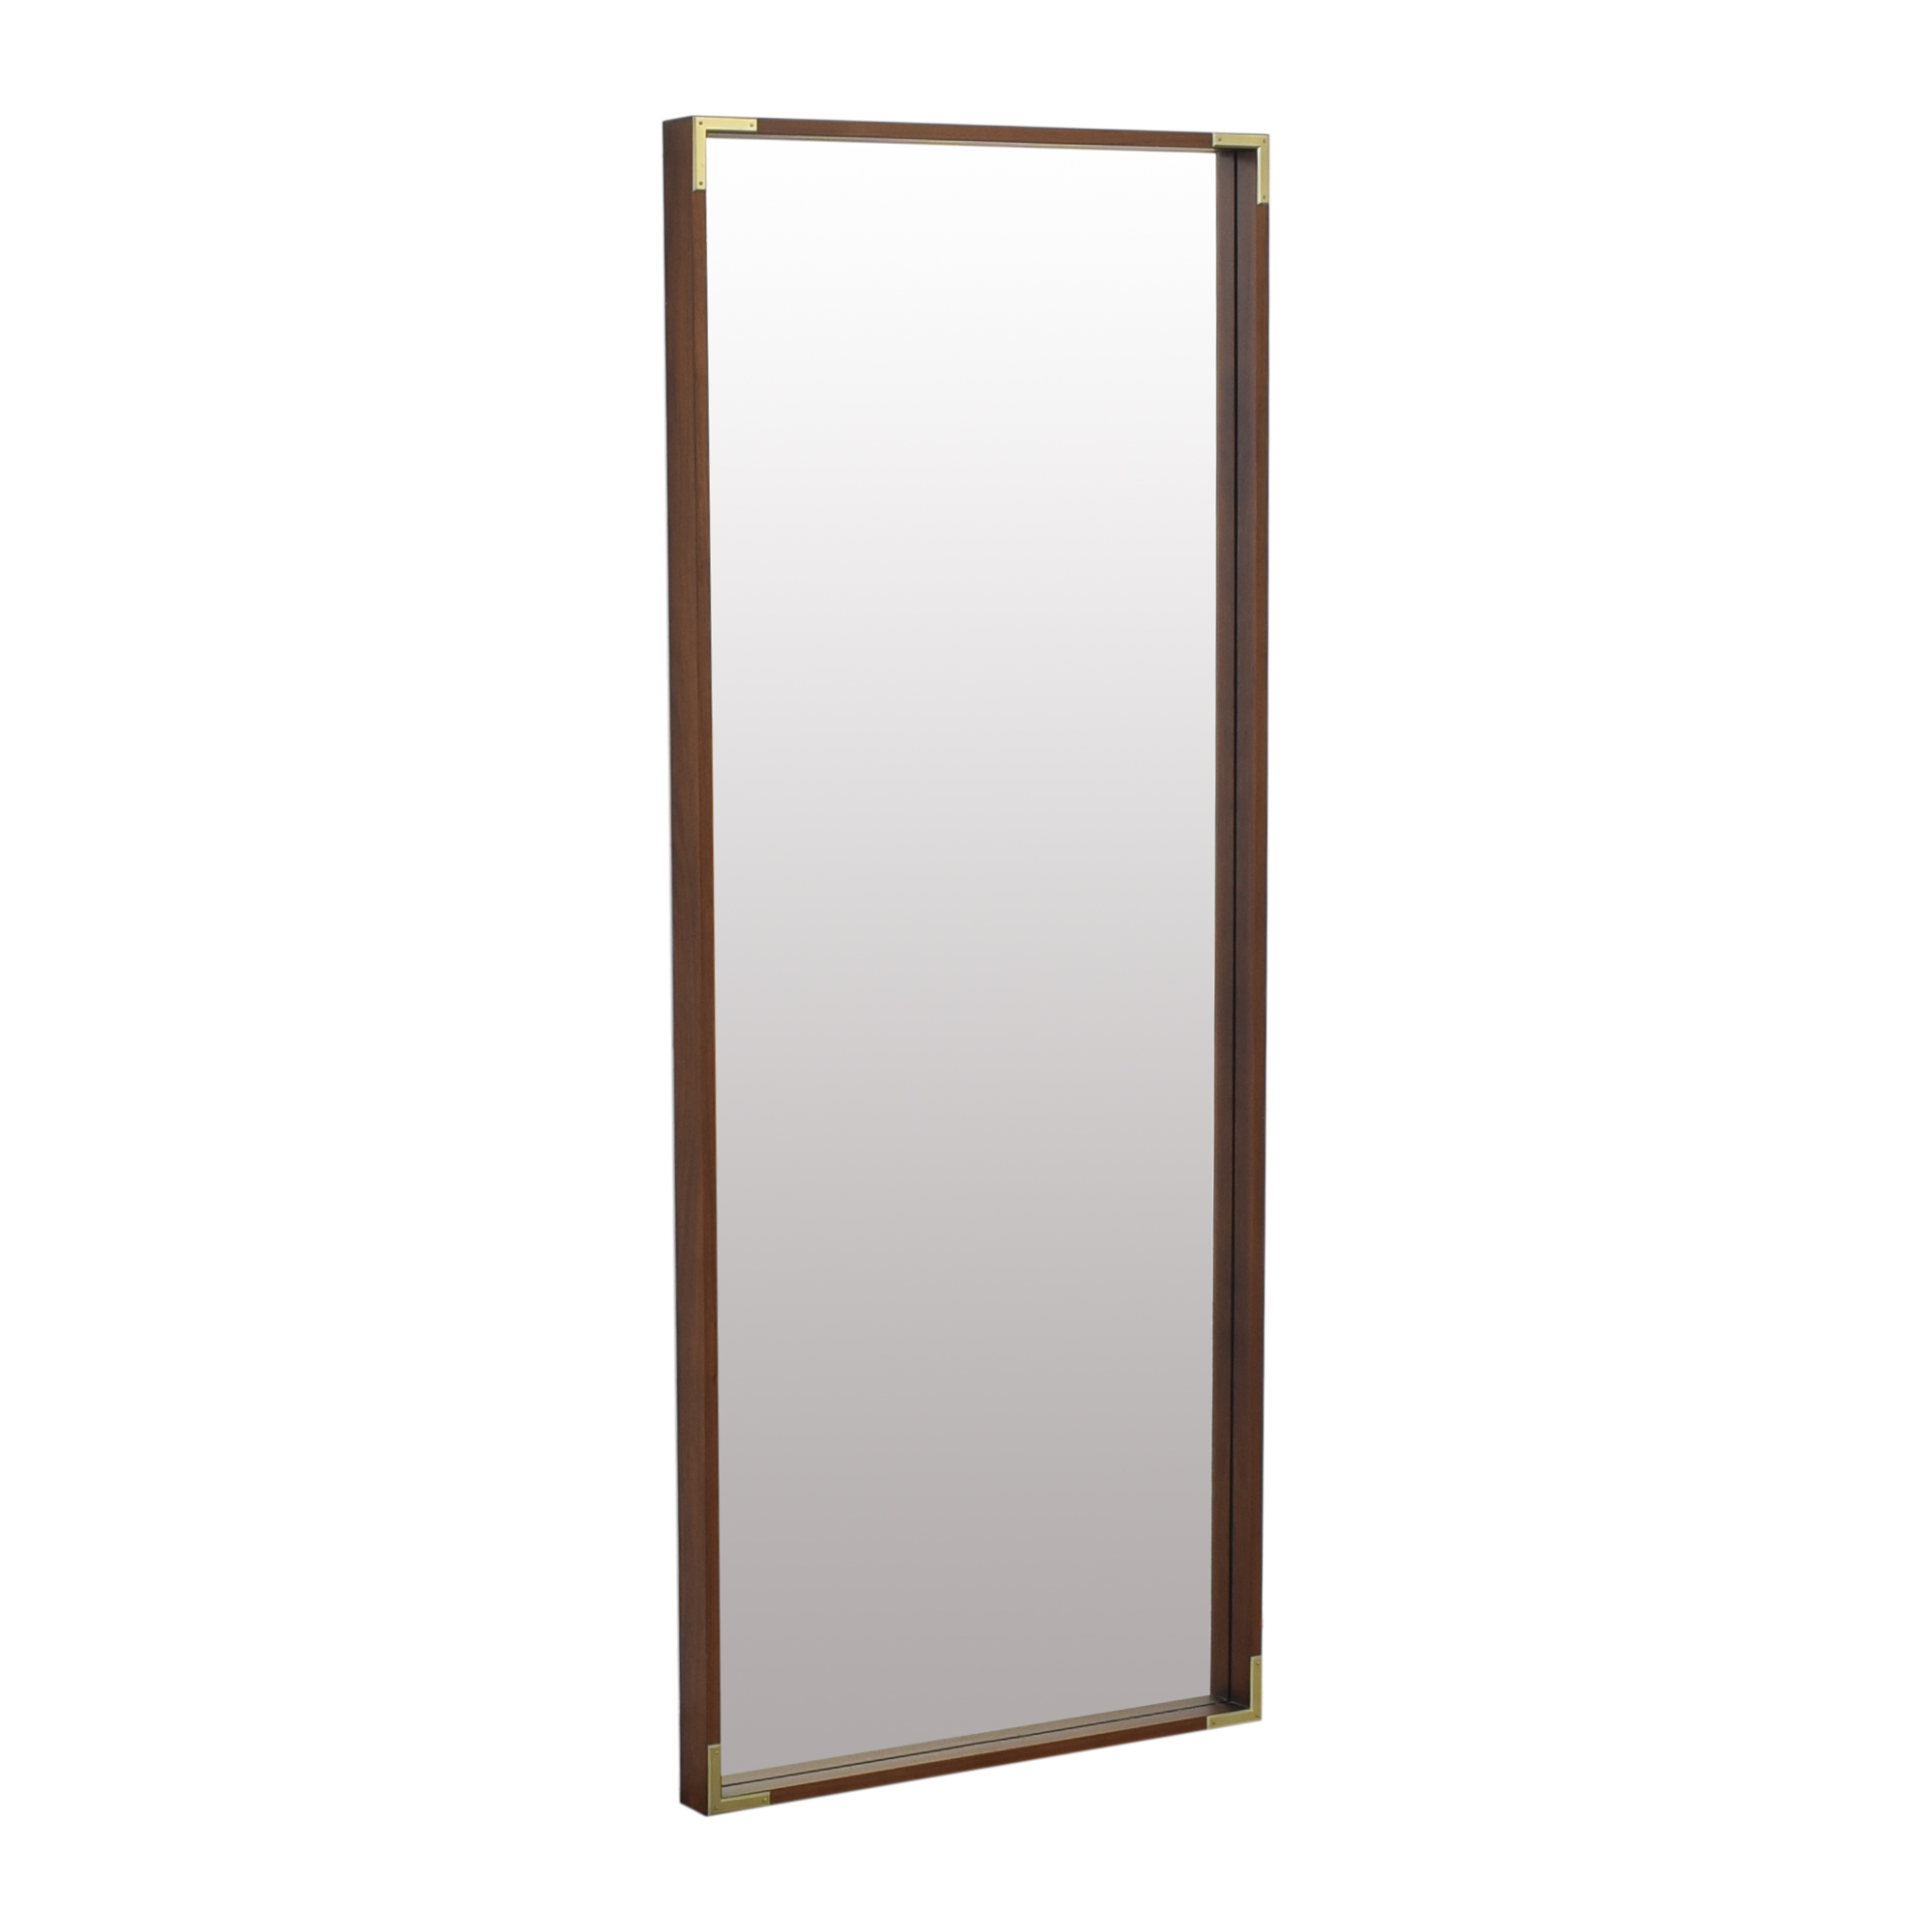 West Elm West Elm Malone Campaign Floor Mirror on sale